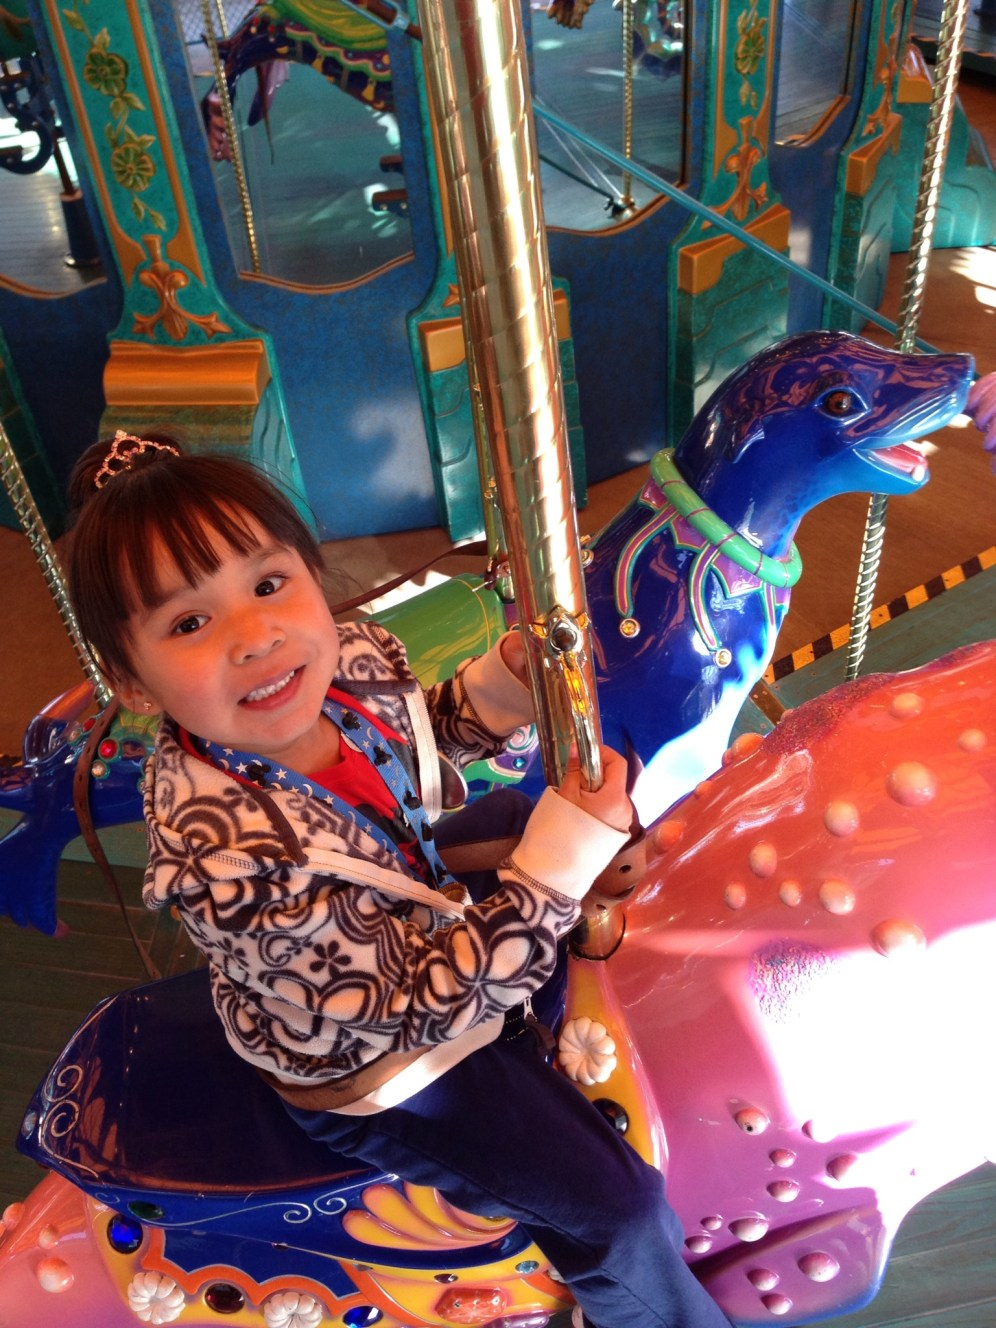 While we were in 45 minute line for Toy Story Mania, the Iz went on King Triton's Carosel